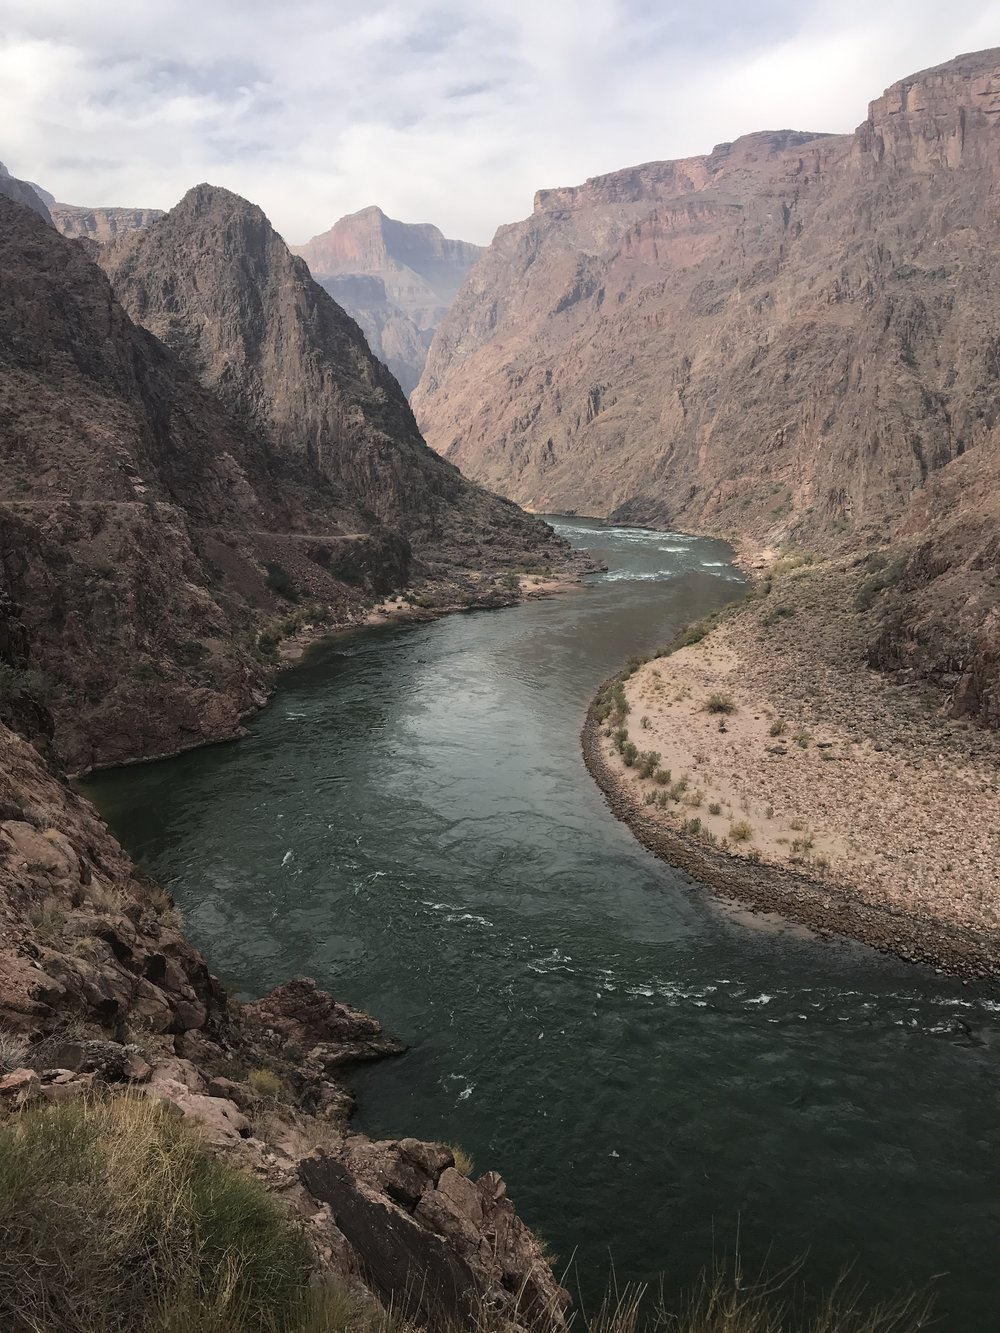 The mighty Colorado River flowing through the Grand Canyon